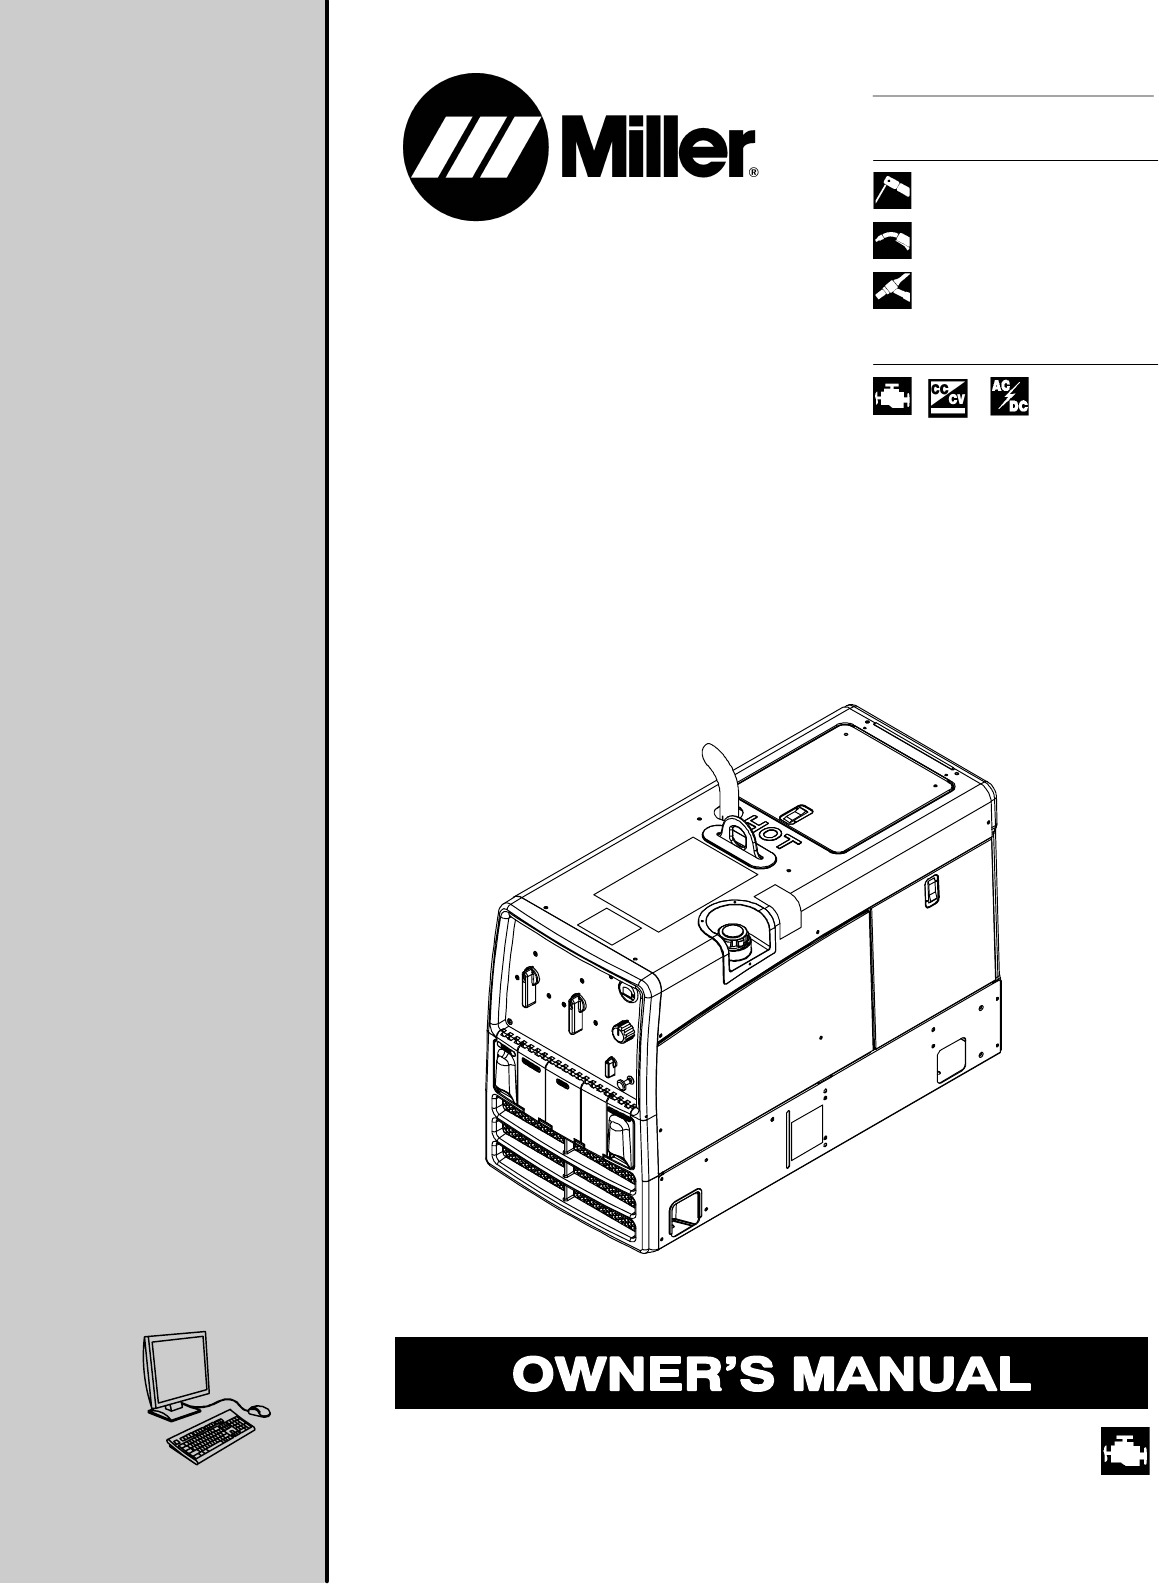 514878ea cc73 4d4b 88be 14aa039a7841 bg1 miller electric welding system bobcat 250 user guide miller bobcat 250 wiring diagram at crackthecode.co